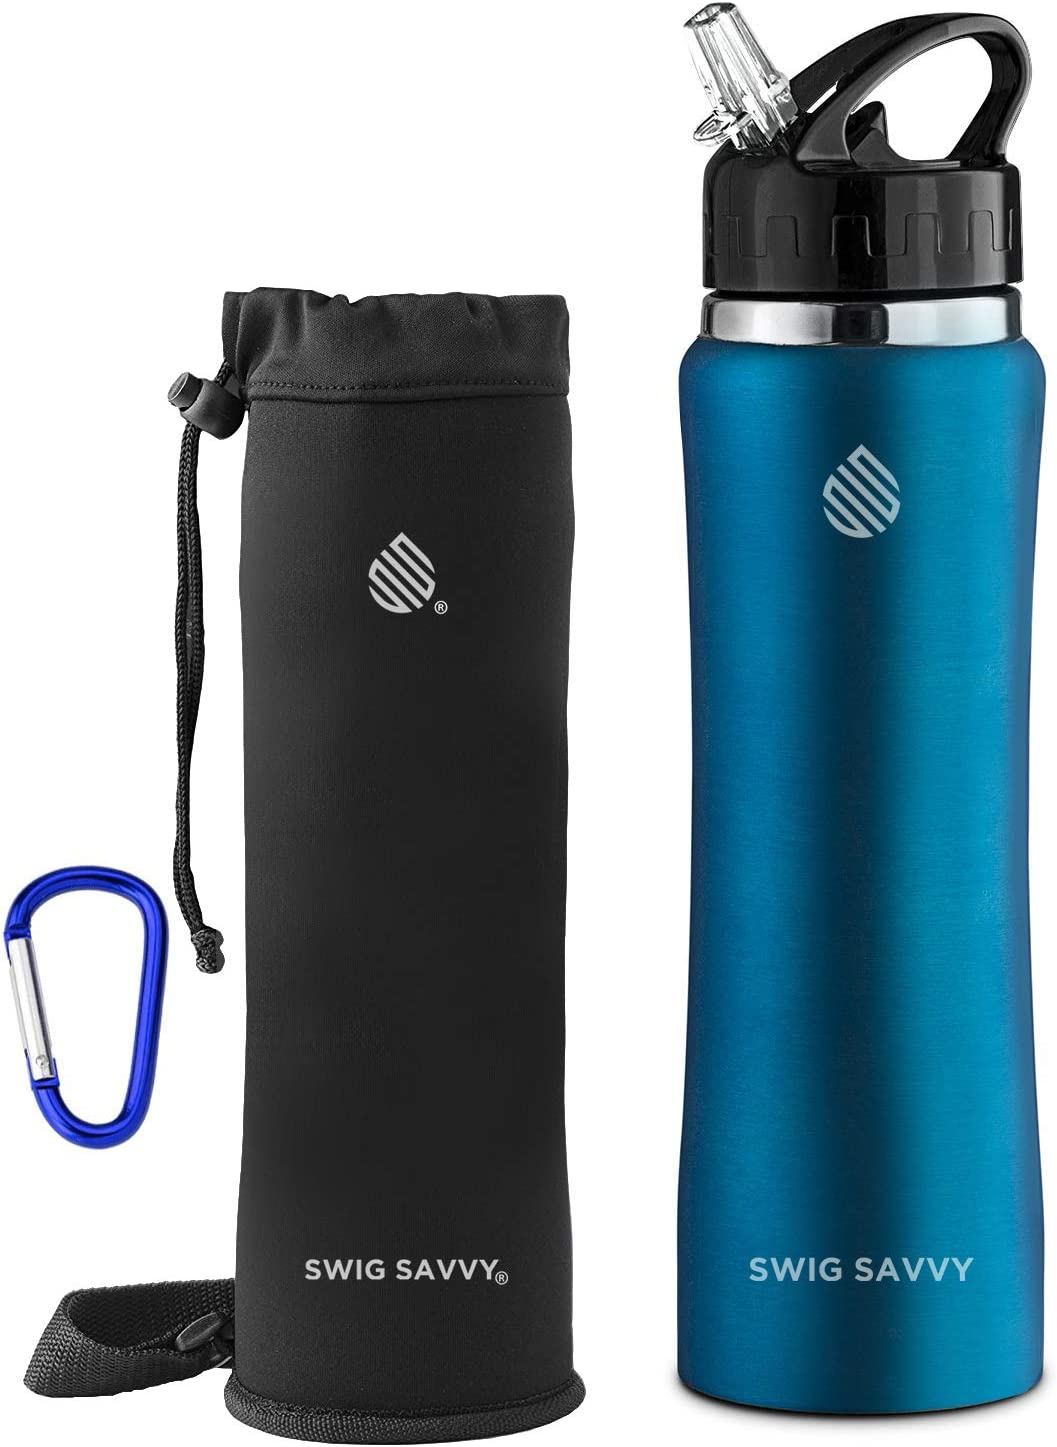 SWIG SAVVY Stainless Steel Water Bottle with Straw Lid | BPA-Free Vacuum Insulated Double Walls Wide Mouth Design | Reusable Sports Drinking Container with Carrying Sleeve Pouch (Light Blue 24 oz)